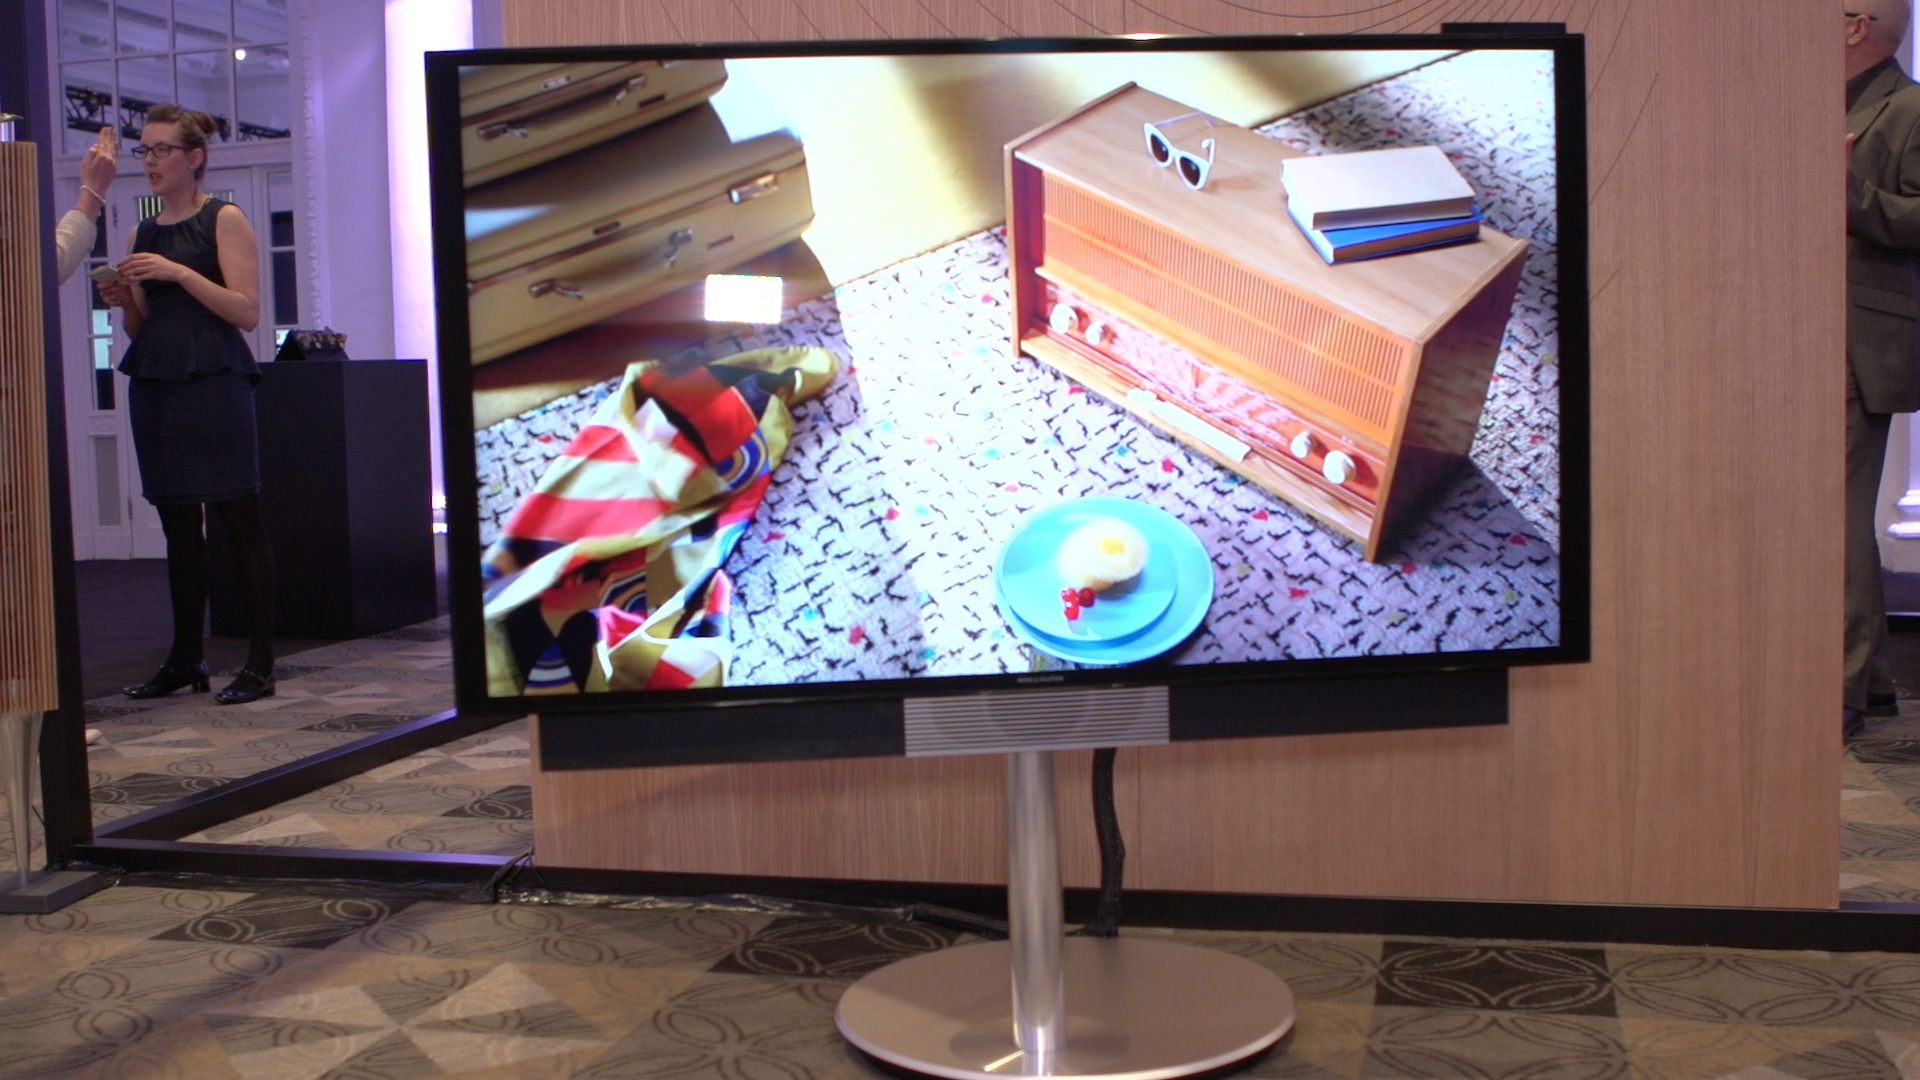 Video: Bang and Olufsen BeoVision Avant provides motorised stand, 4K resolution for a high price